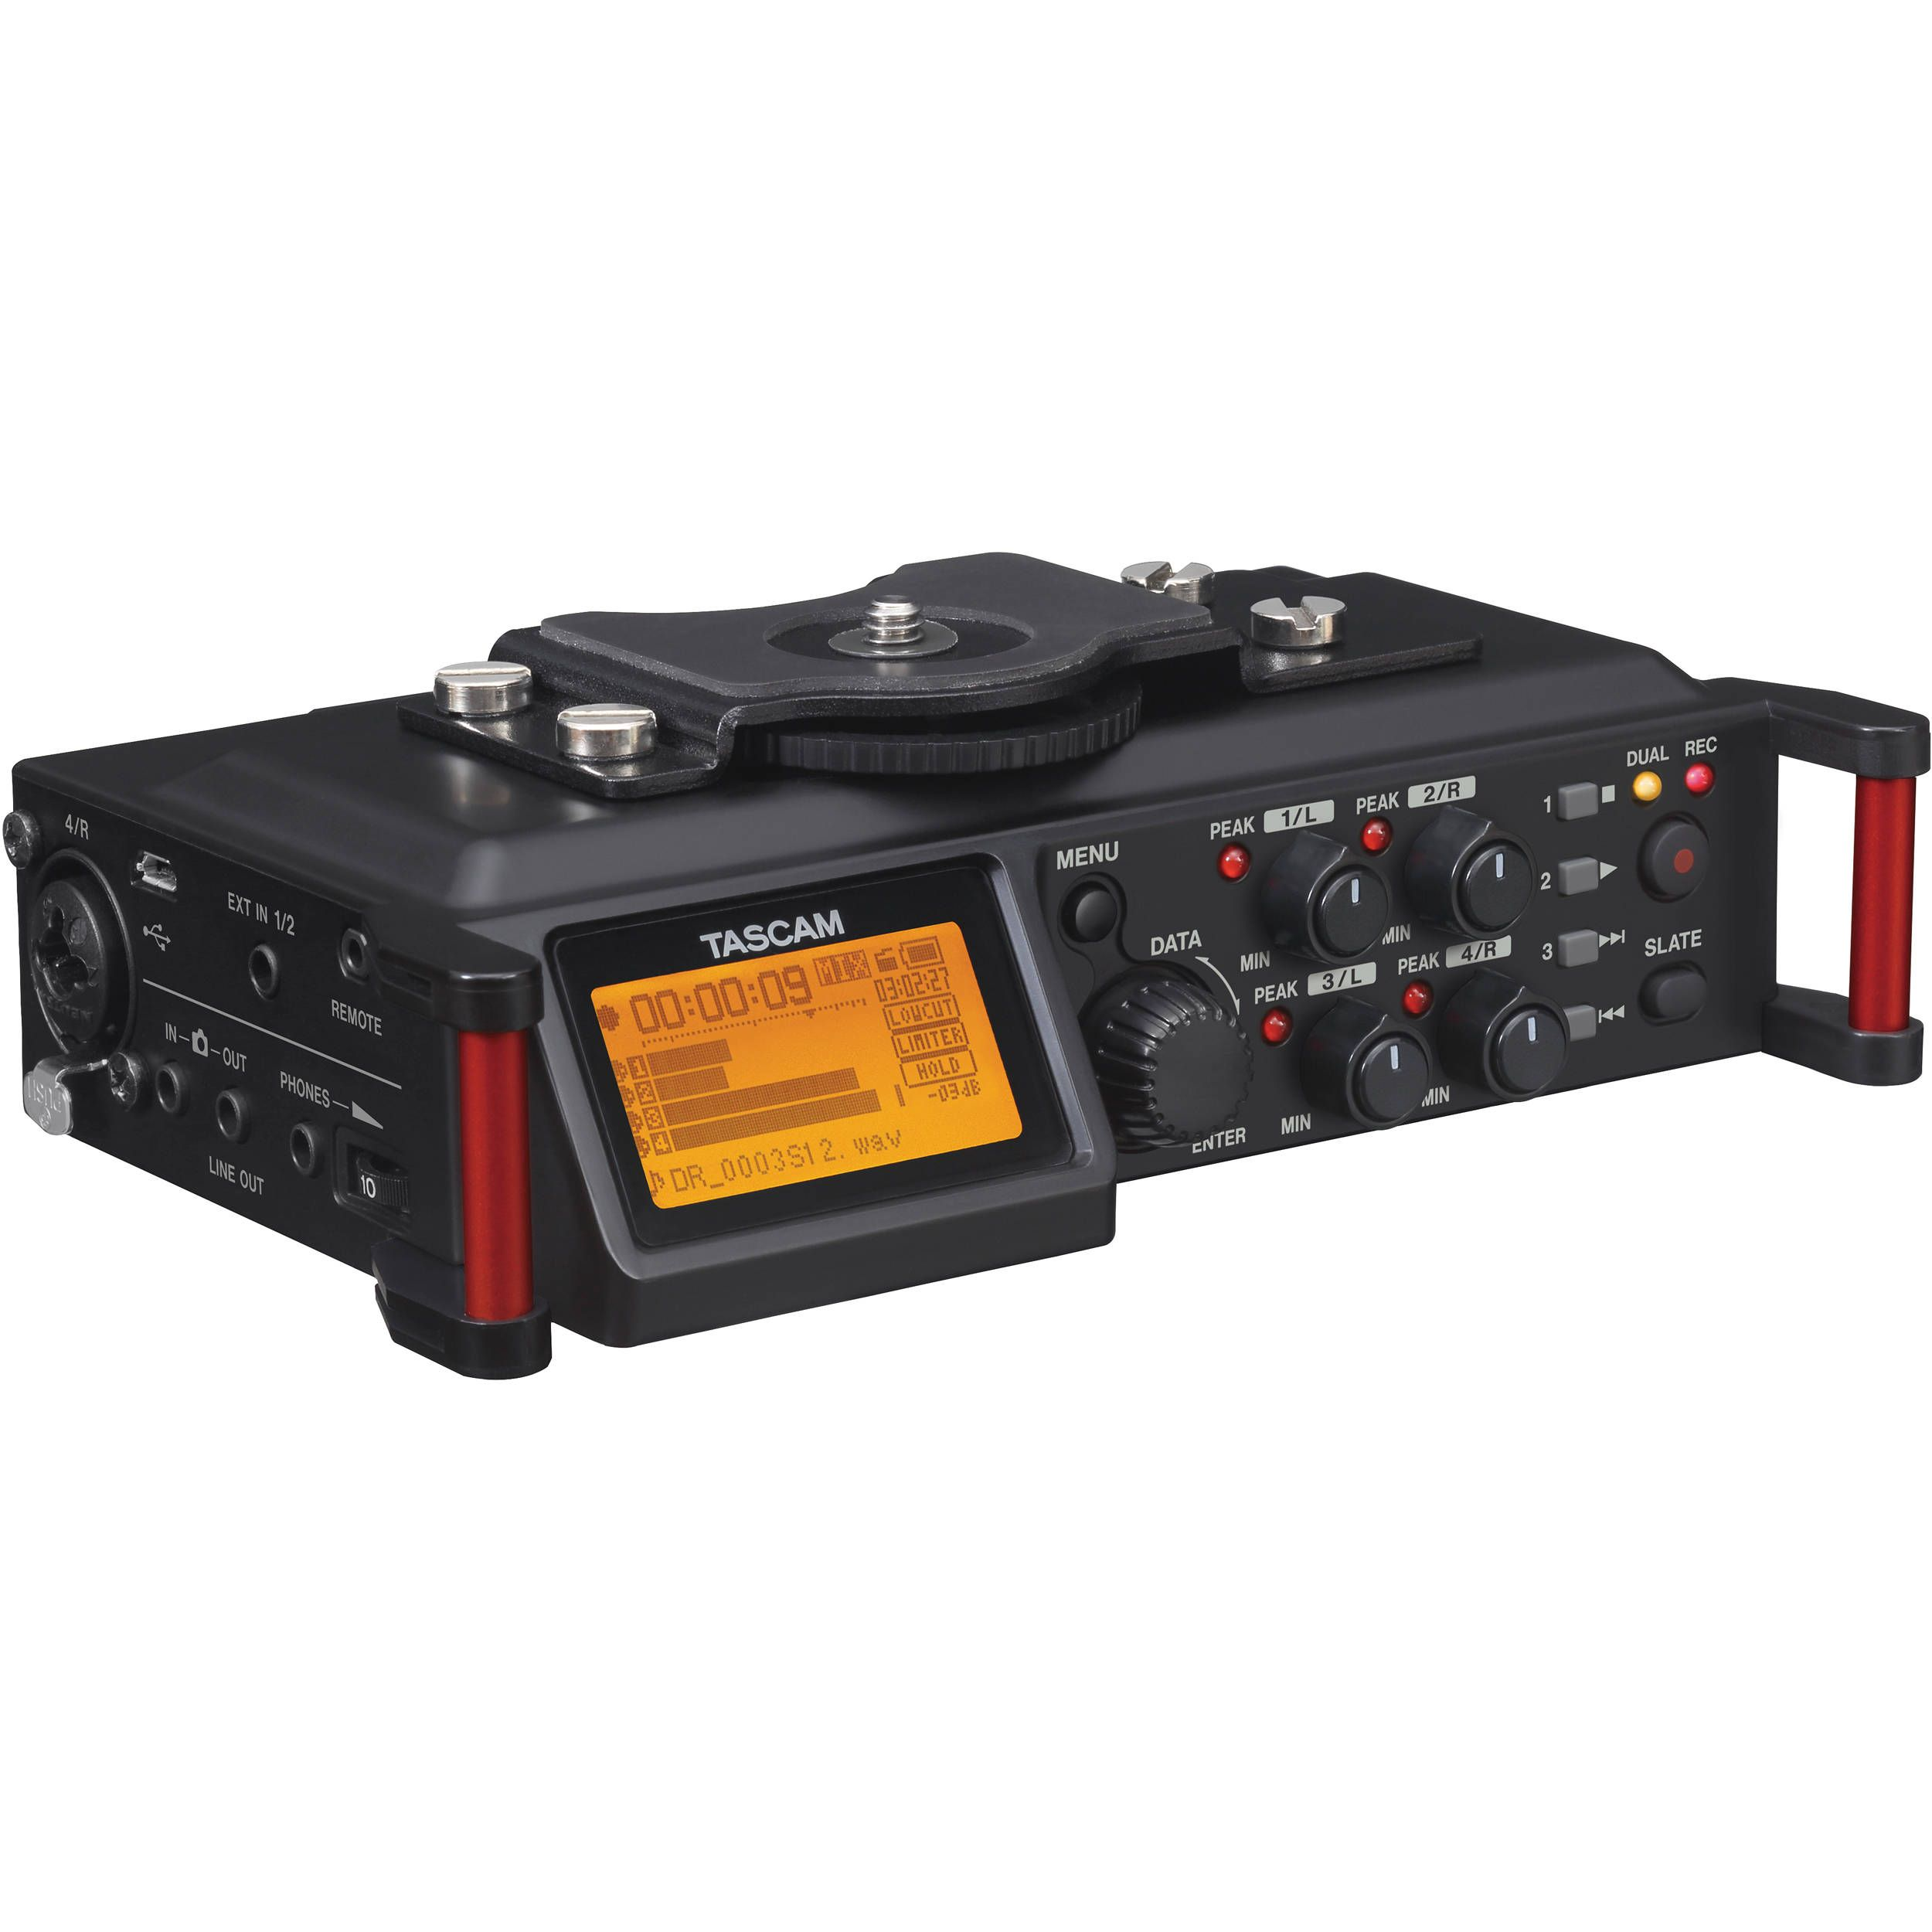 Tascam DR-70D 4-Channel Audio Recording Device for DSLR and Video ...